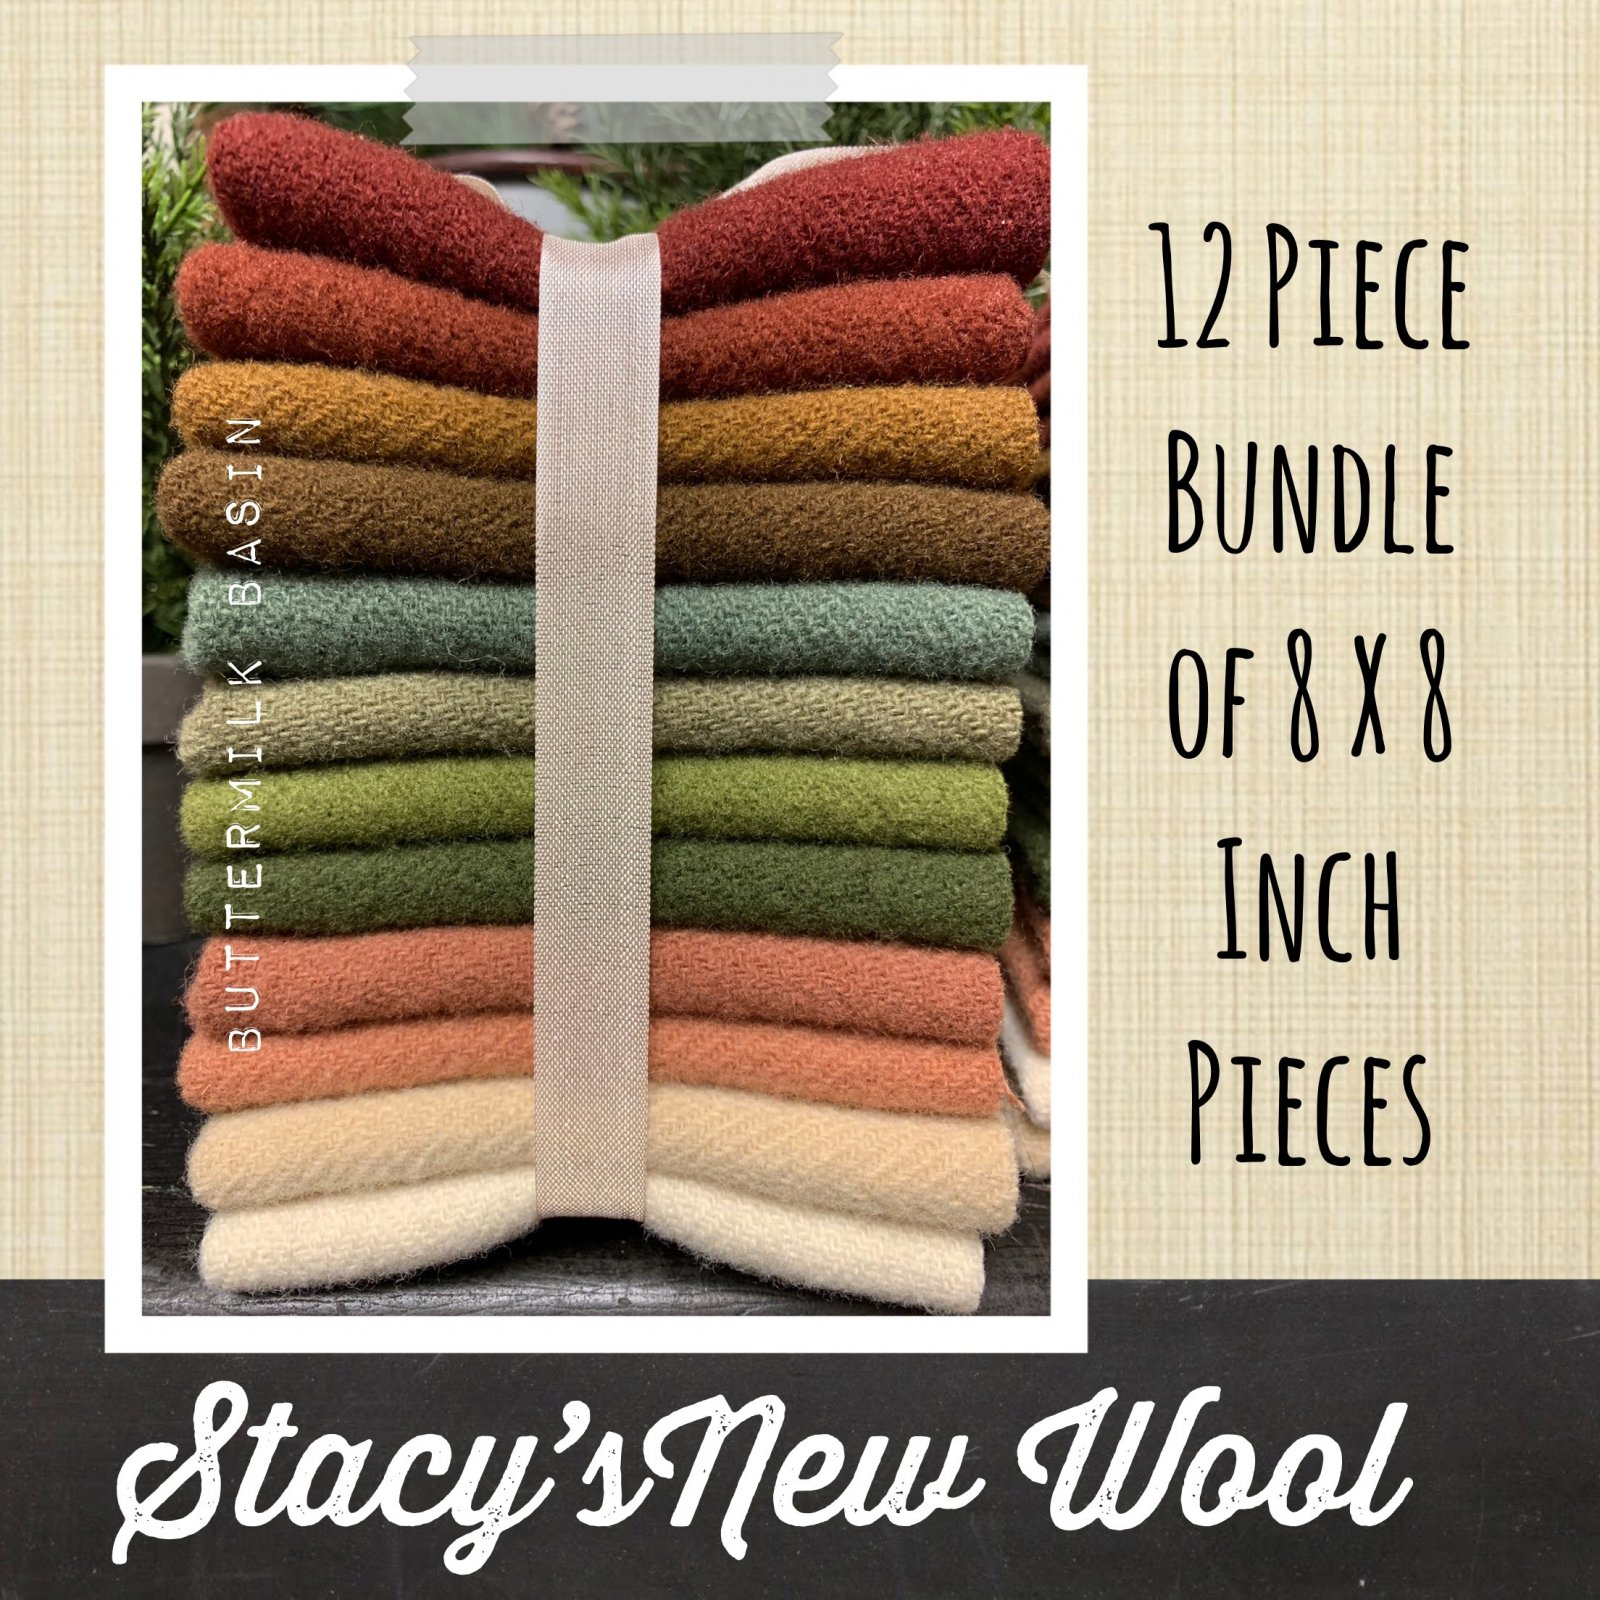 Stacy's New Wool * 12 Piece Bundle - 8 x 8 Pieces